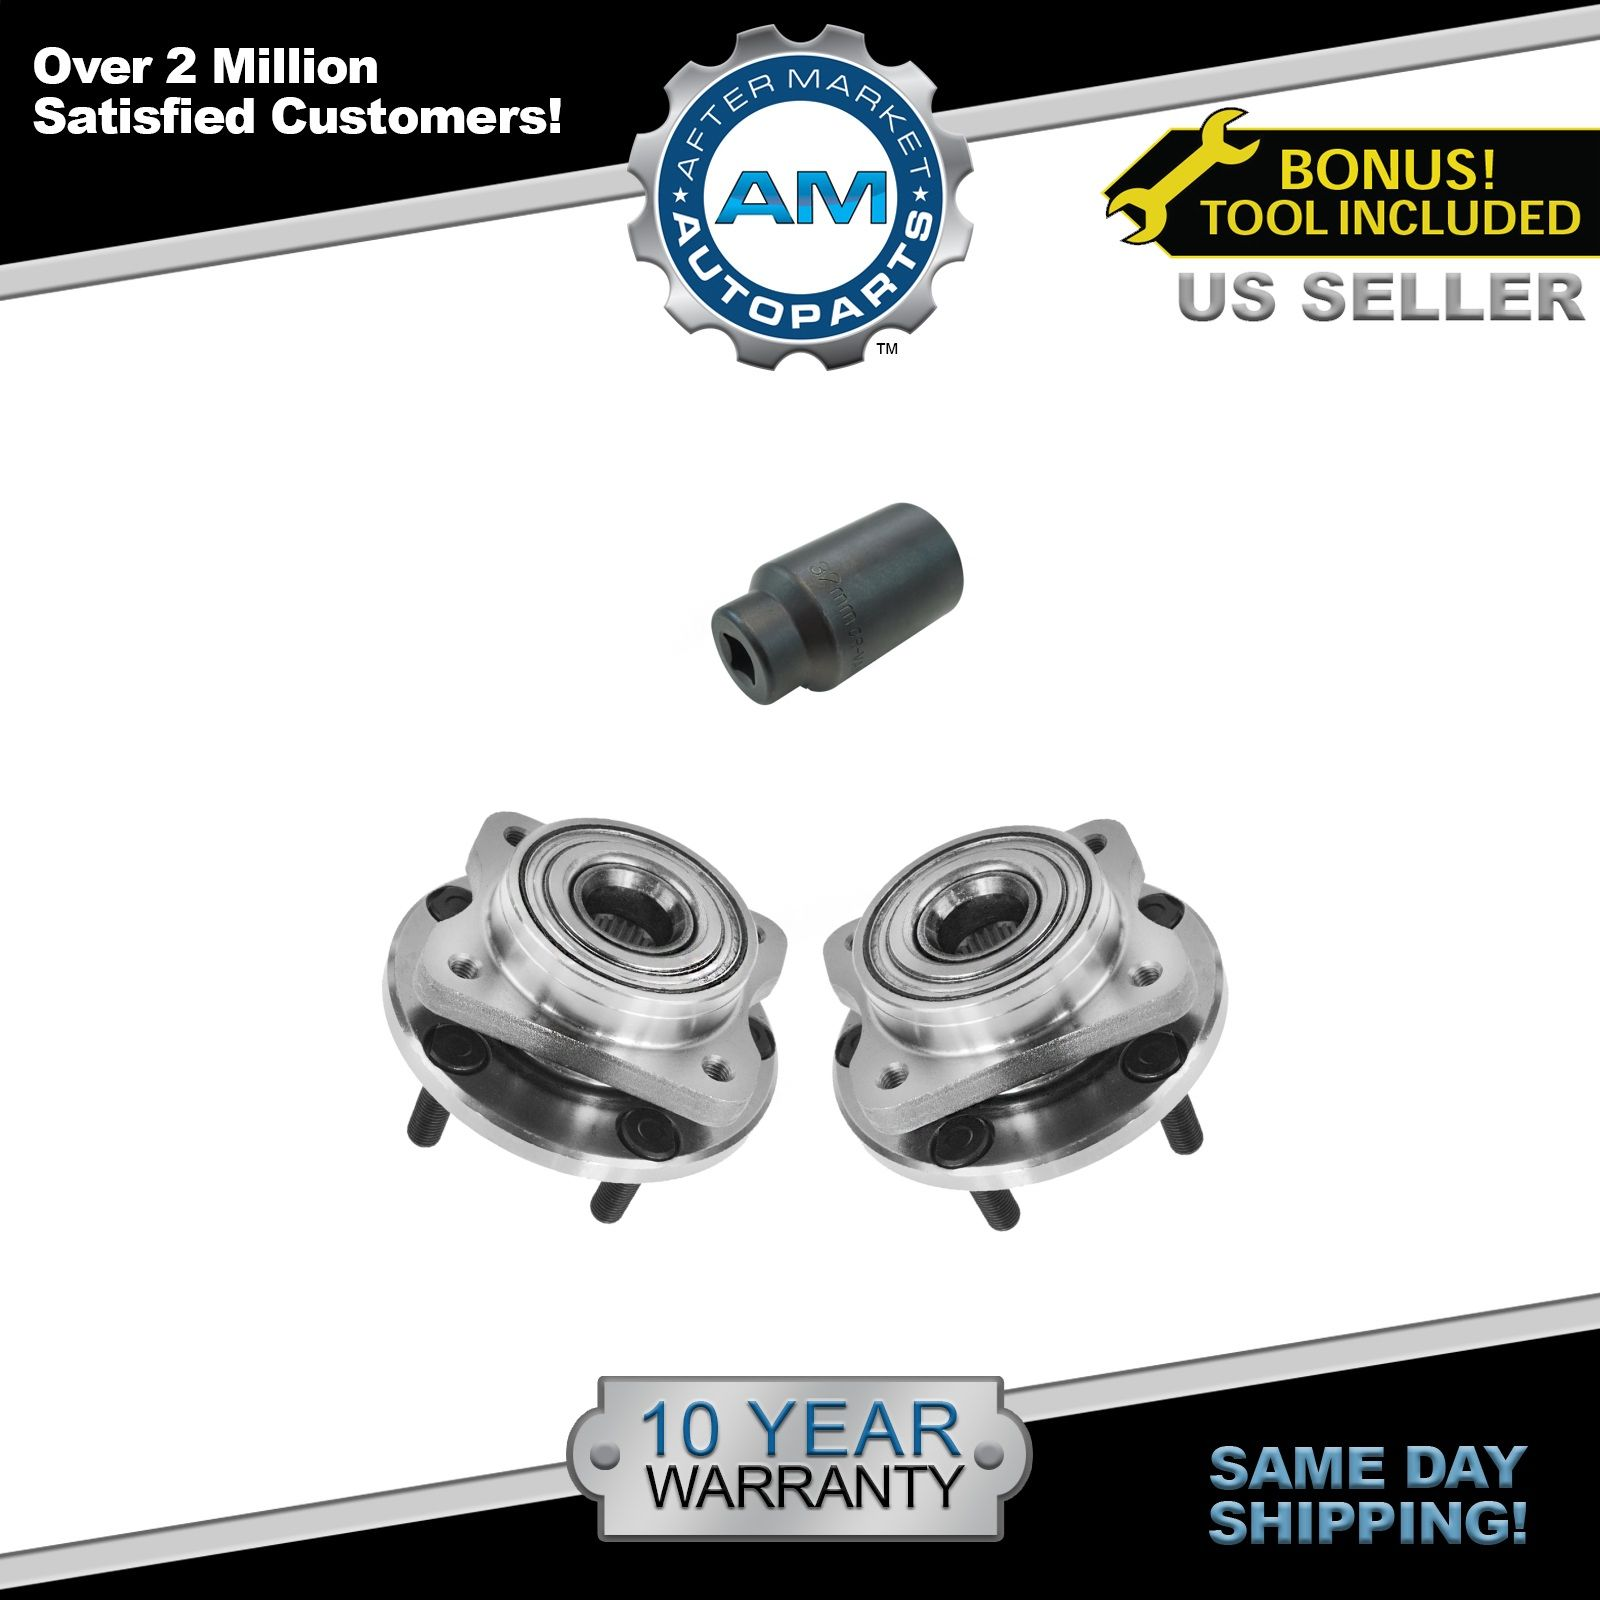 One Bearing Included with Two Years Warranty 2015 fits Chrysler 300 Front Wheel Bearing and Hub Assembly Note: AWD